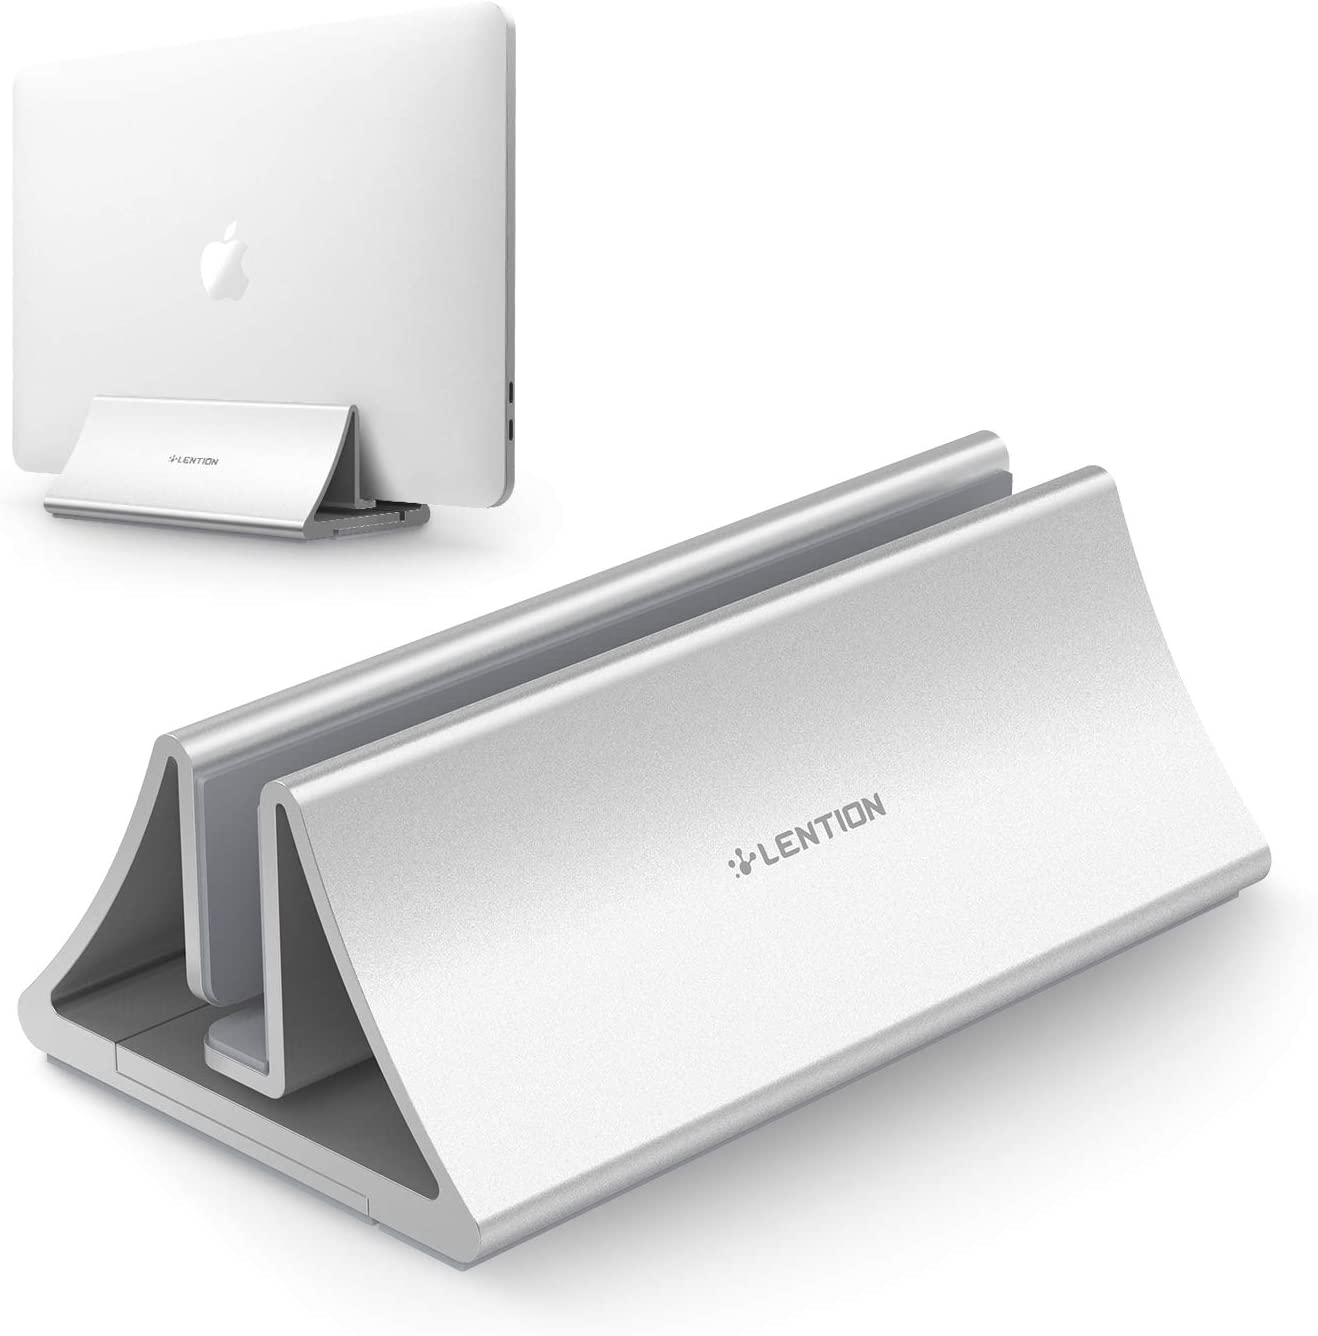 LENTION Aluminum Space-Saving Vertical Desktop Stand Compatible MacBook Air / Pro 13 15, MacBook 12, iPad Pro 12.9, Surface Book, Chromebook and 11 to 17-inch Laptops (Silver)